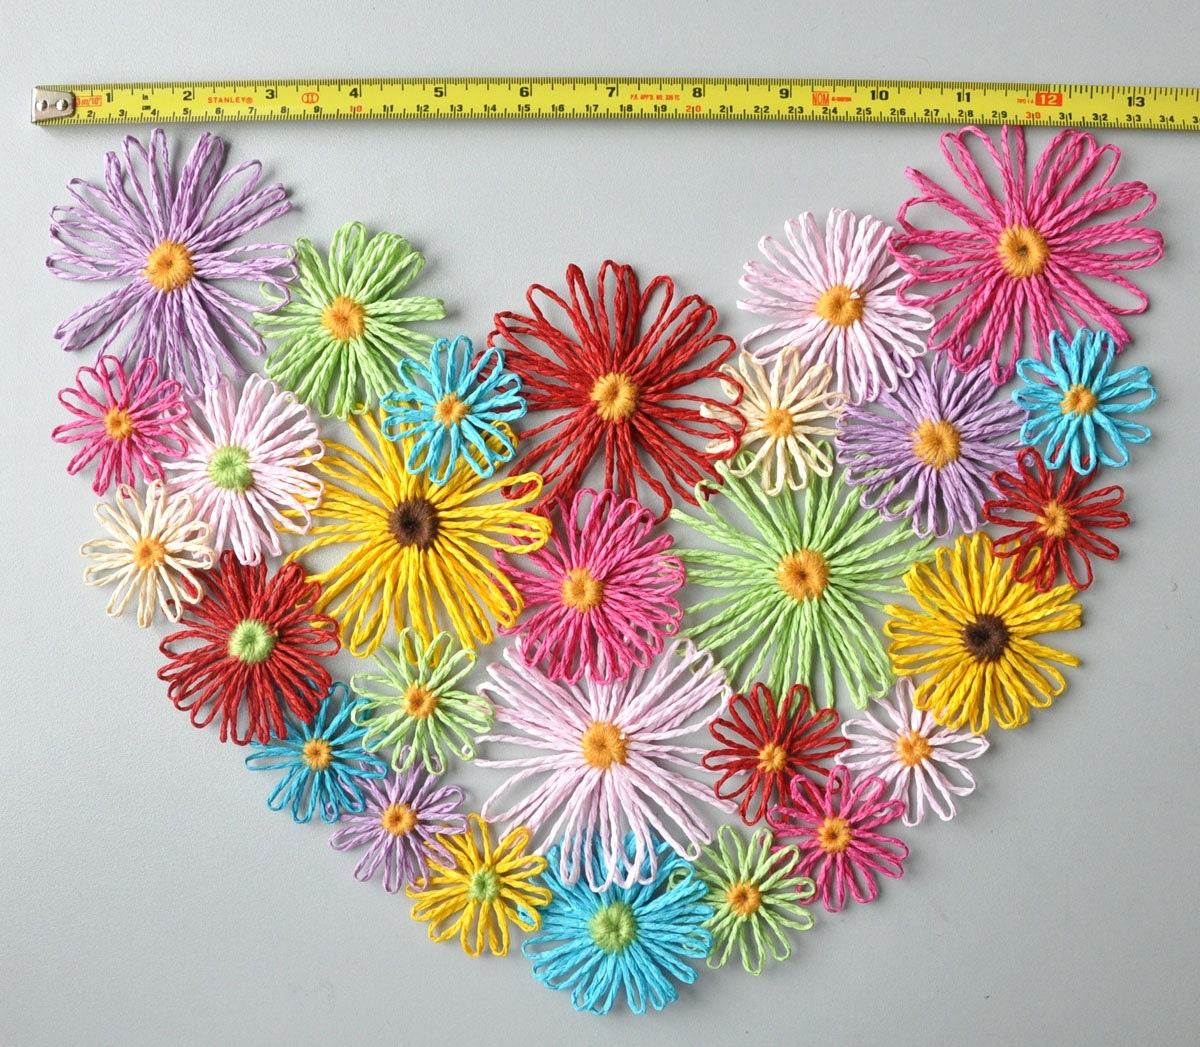 Floral Heart Handmade Multicolor Loom Flowers Wall Decor